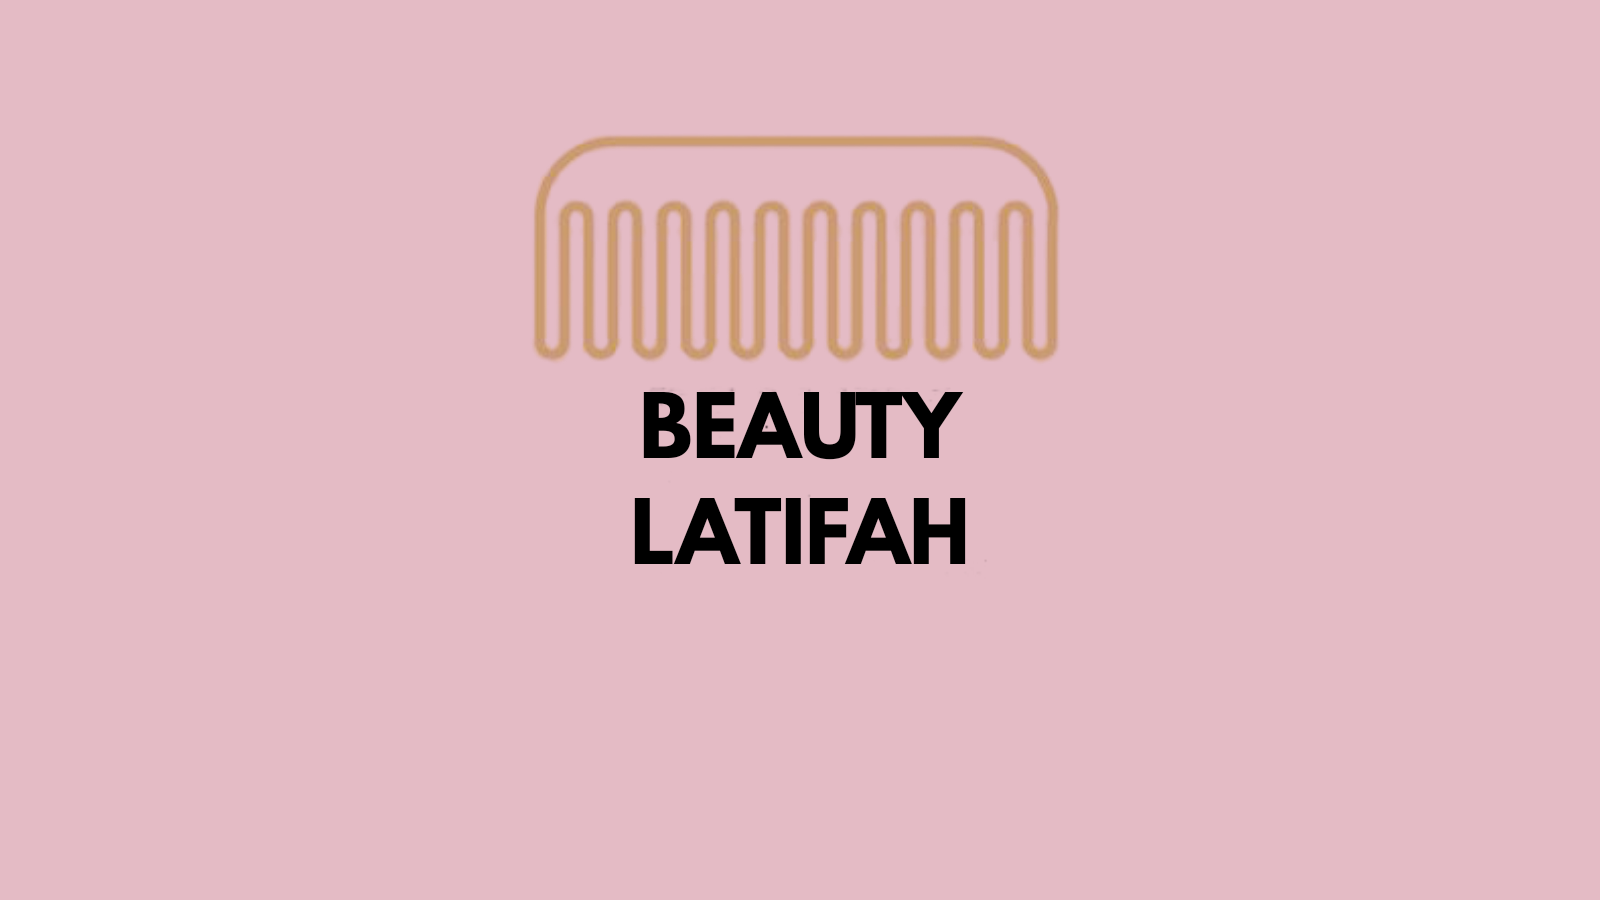 beauty latifah/m